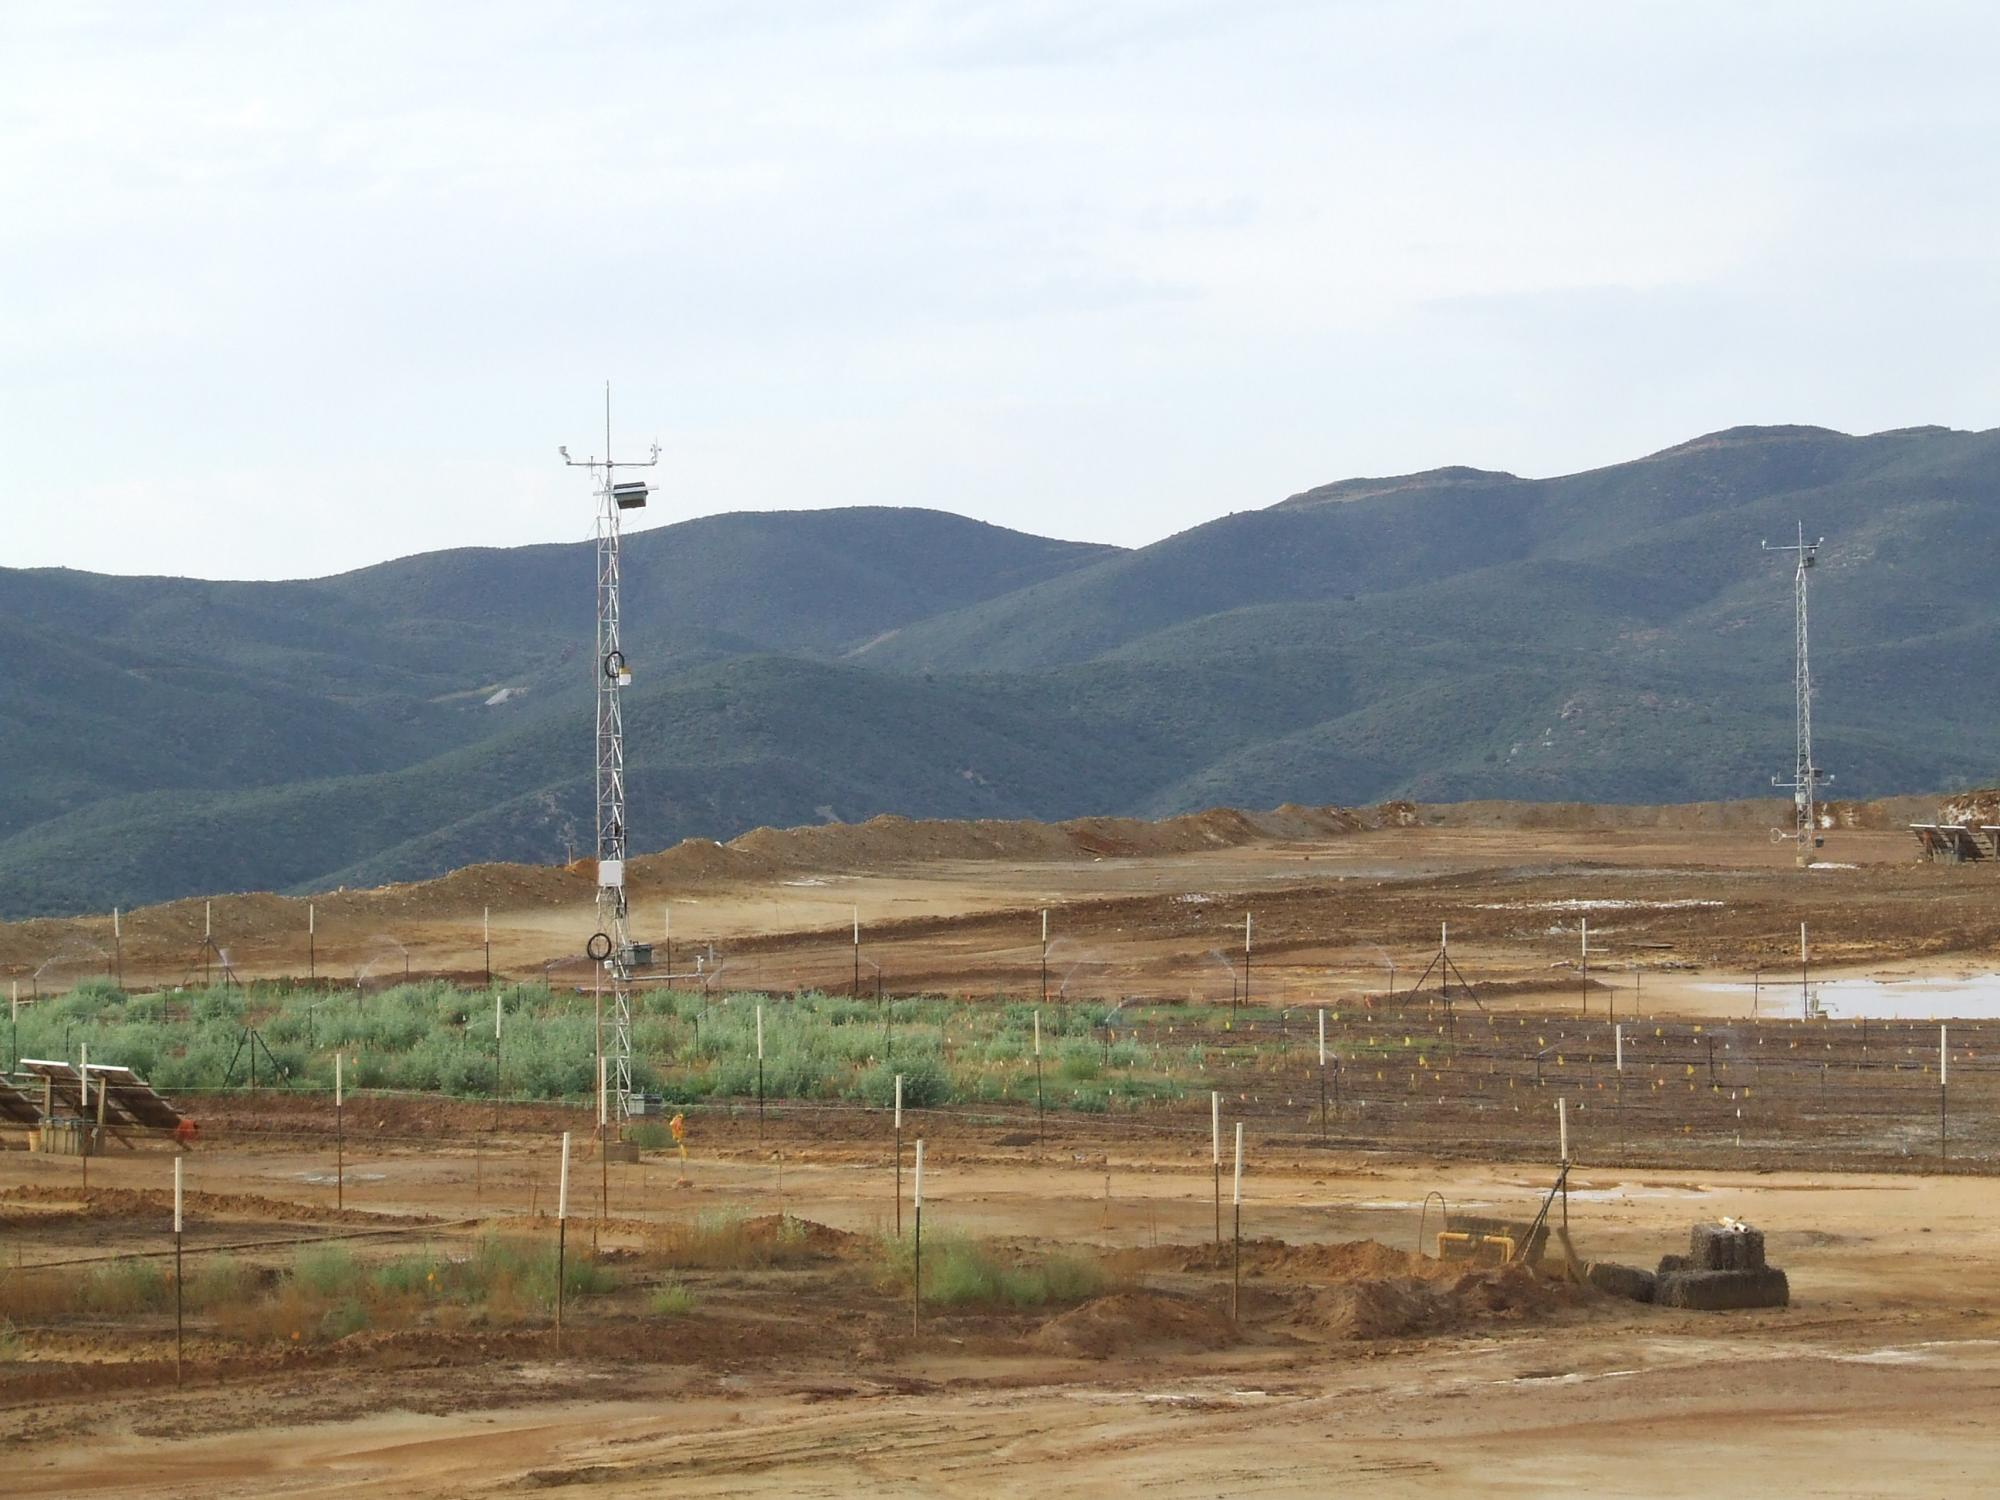 A view of the Iron King mine tailings revegetation trial and the two dust flux towers set up to measure wind speed and direction, and dust movement. Desert plants were installed in the plots to determine which concentrations could stabilize the mine taili